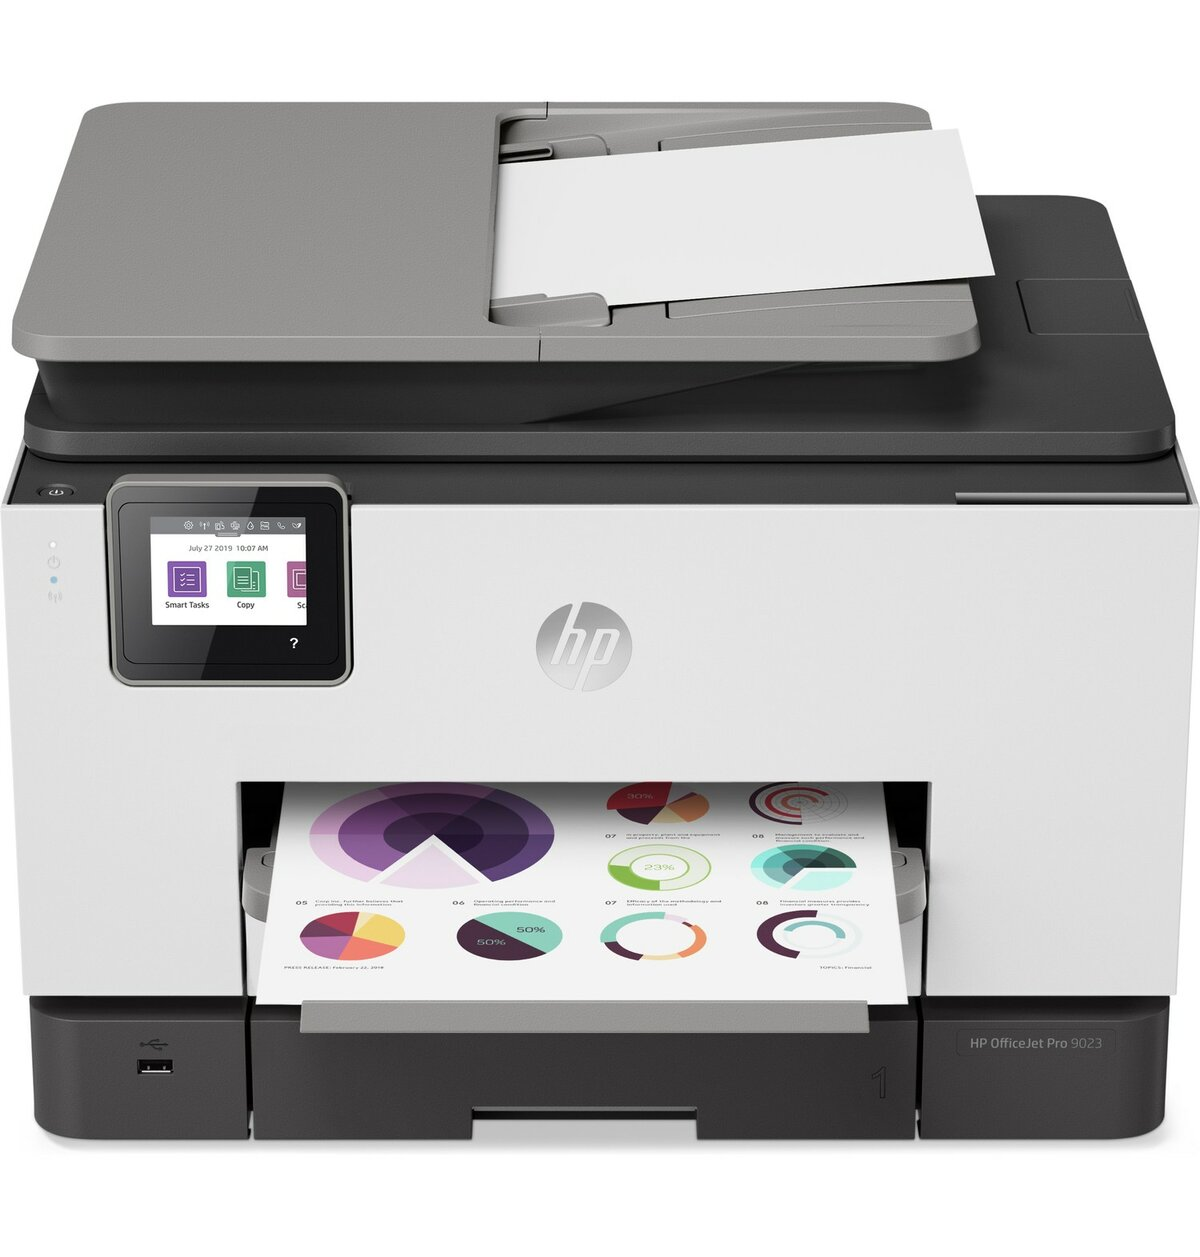 slide 2 of 2,show larger image, hp officejet pro 9023 all-in-one printer